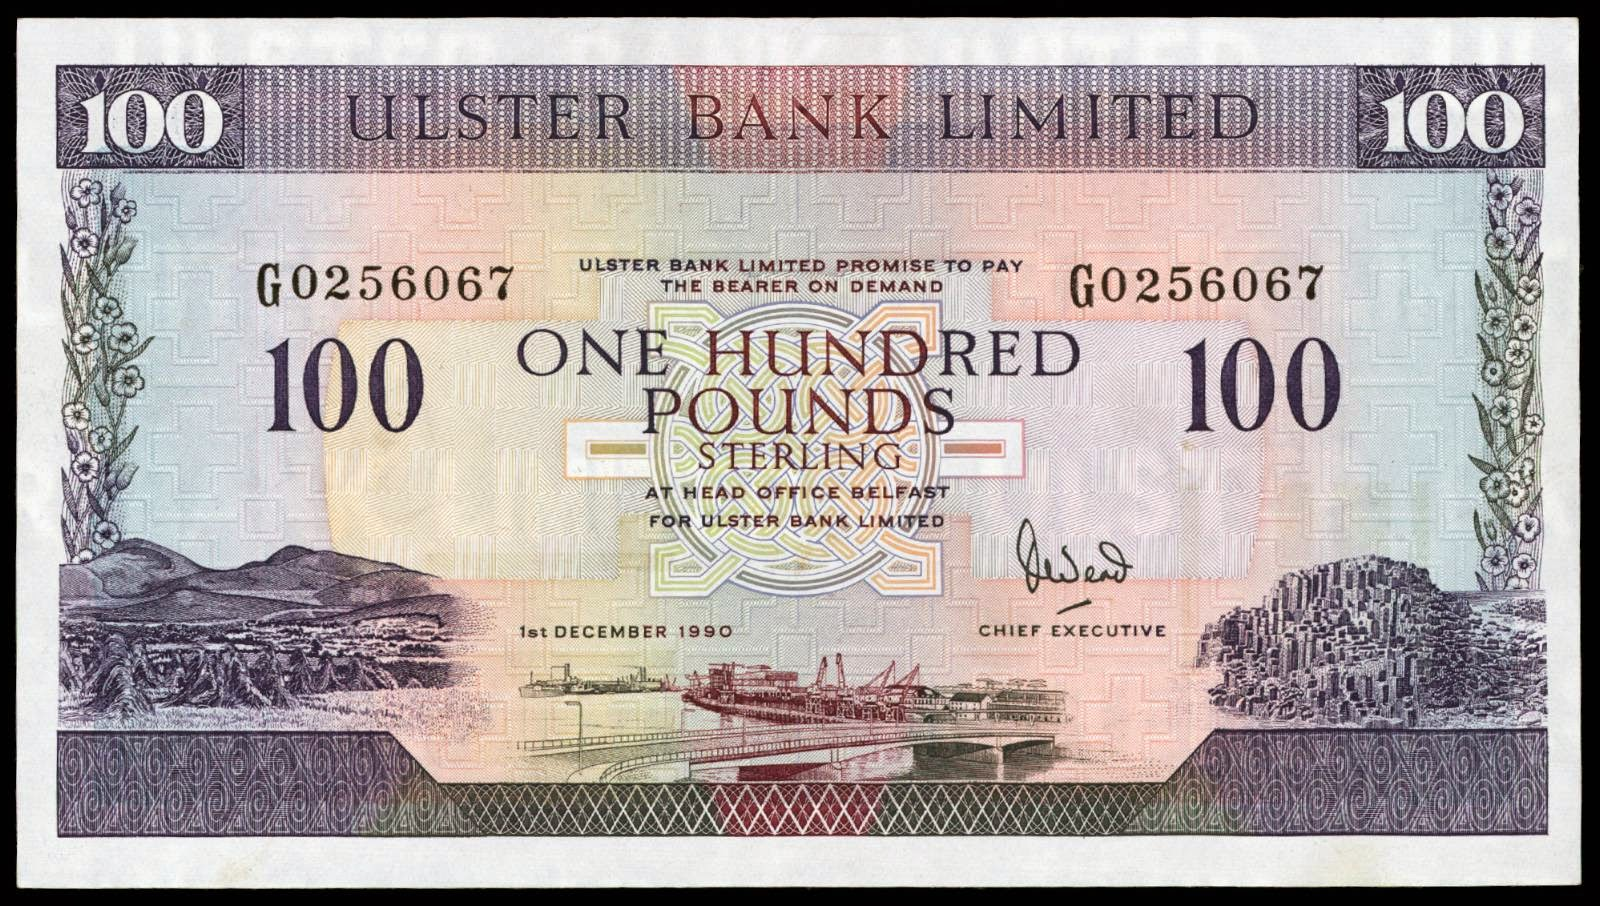 Ireland Ulster Bank 100 Pounds Sterling Banknote